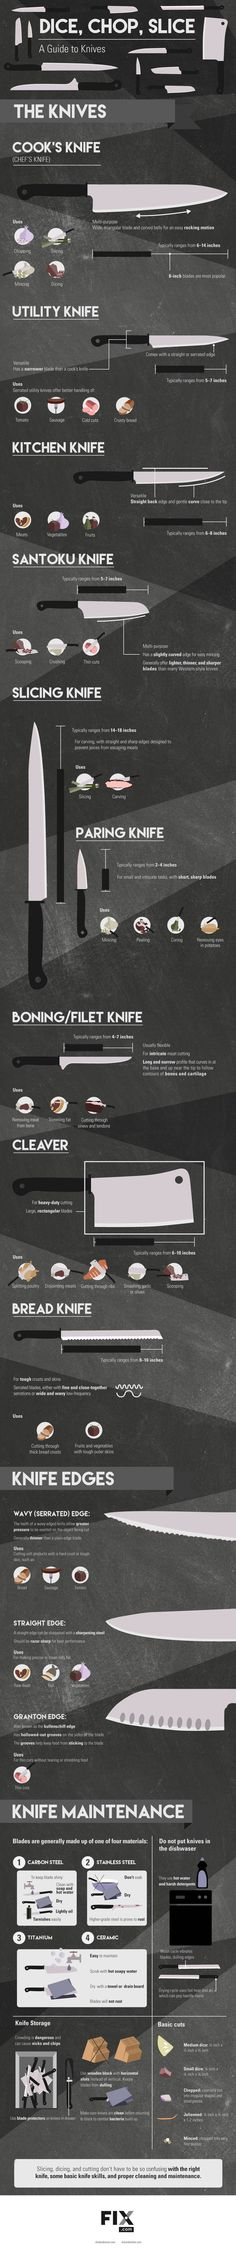 Dice, chop, and slice your way through any ingredient – with the right blade, of course. And remember, you won't get very far without a sharp blade.